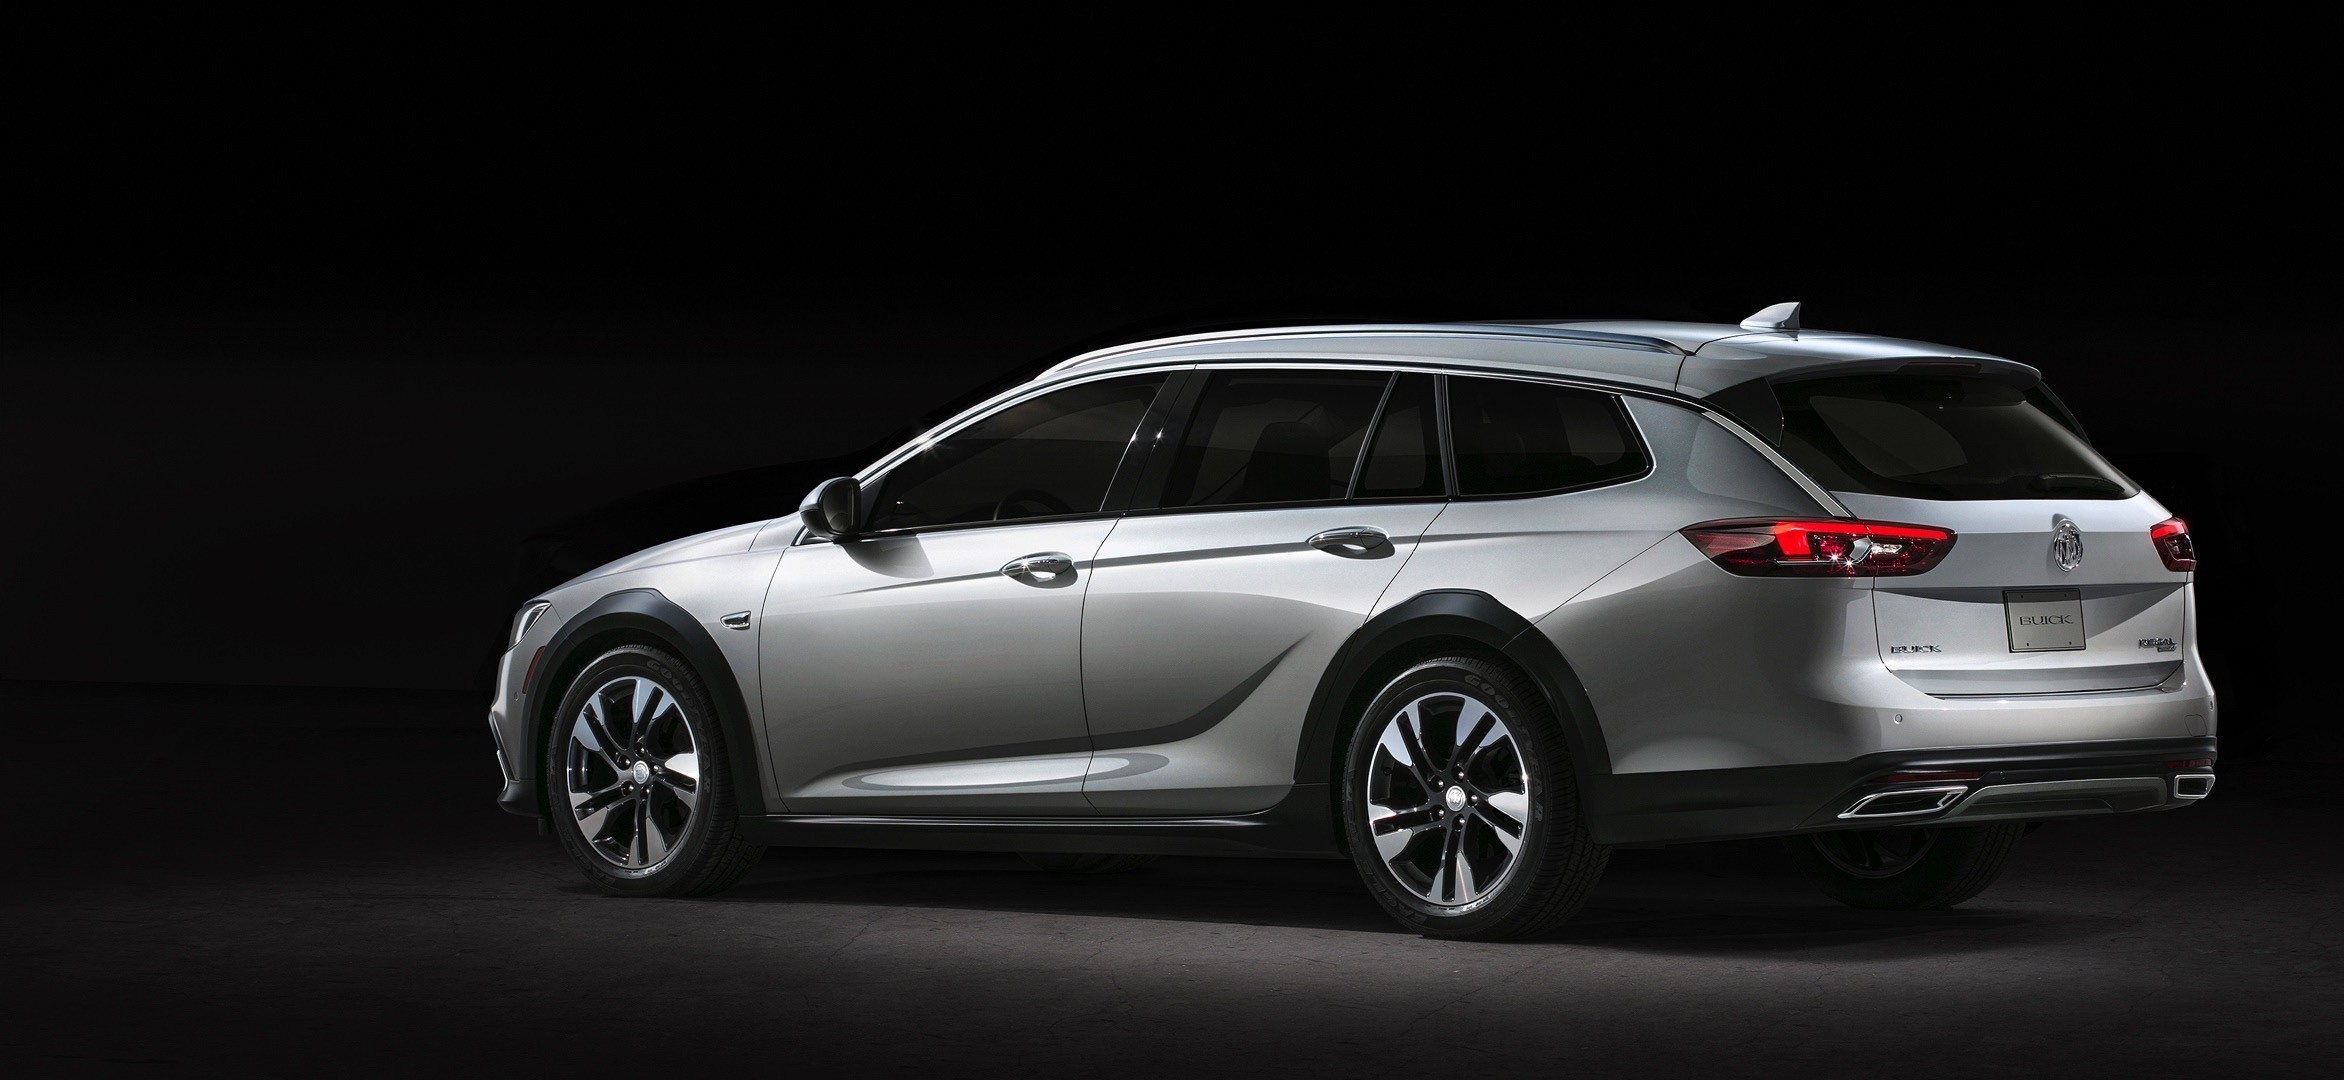 2018 buick regal gs leaks in china has 2 0t engine autoevolution. Black Bedroom Furniture Sets. Home Design Ideas